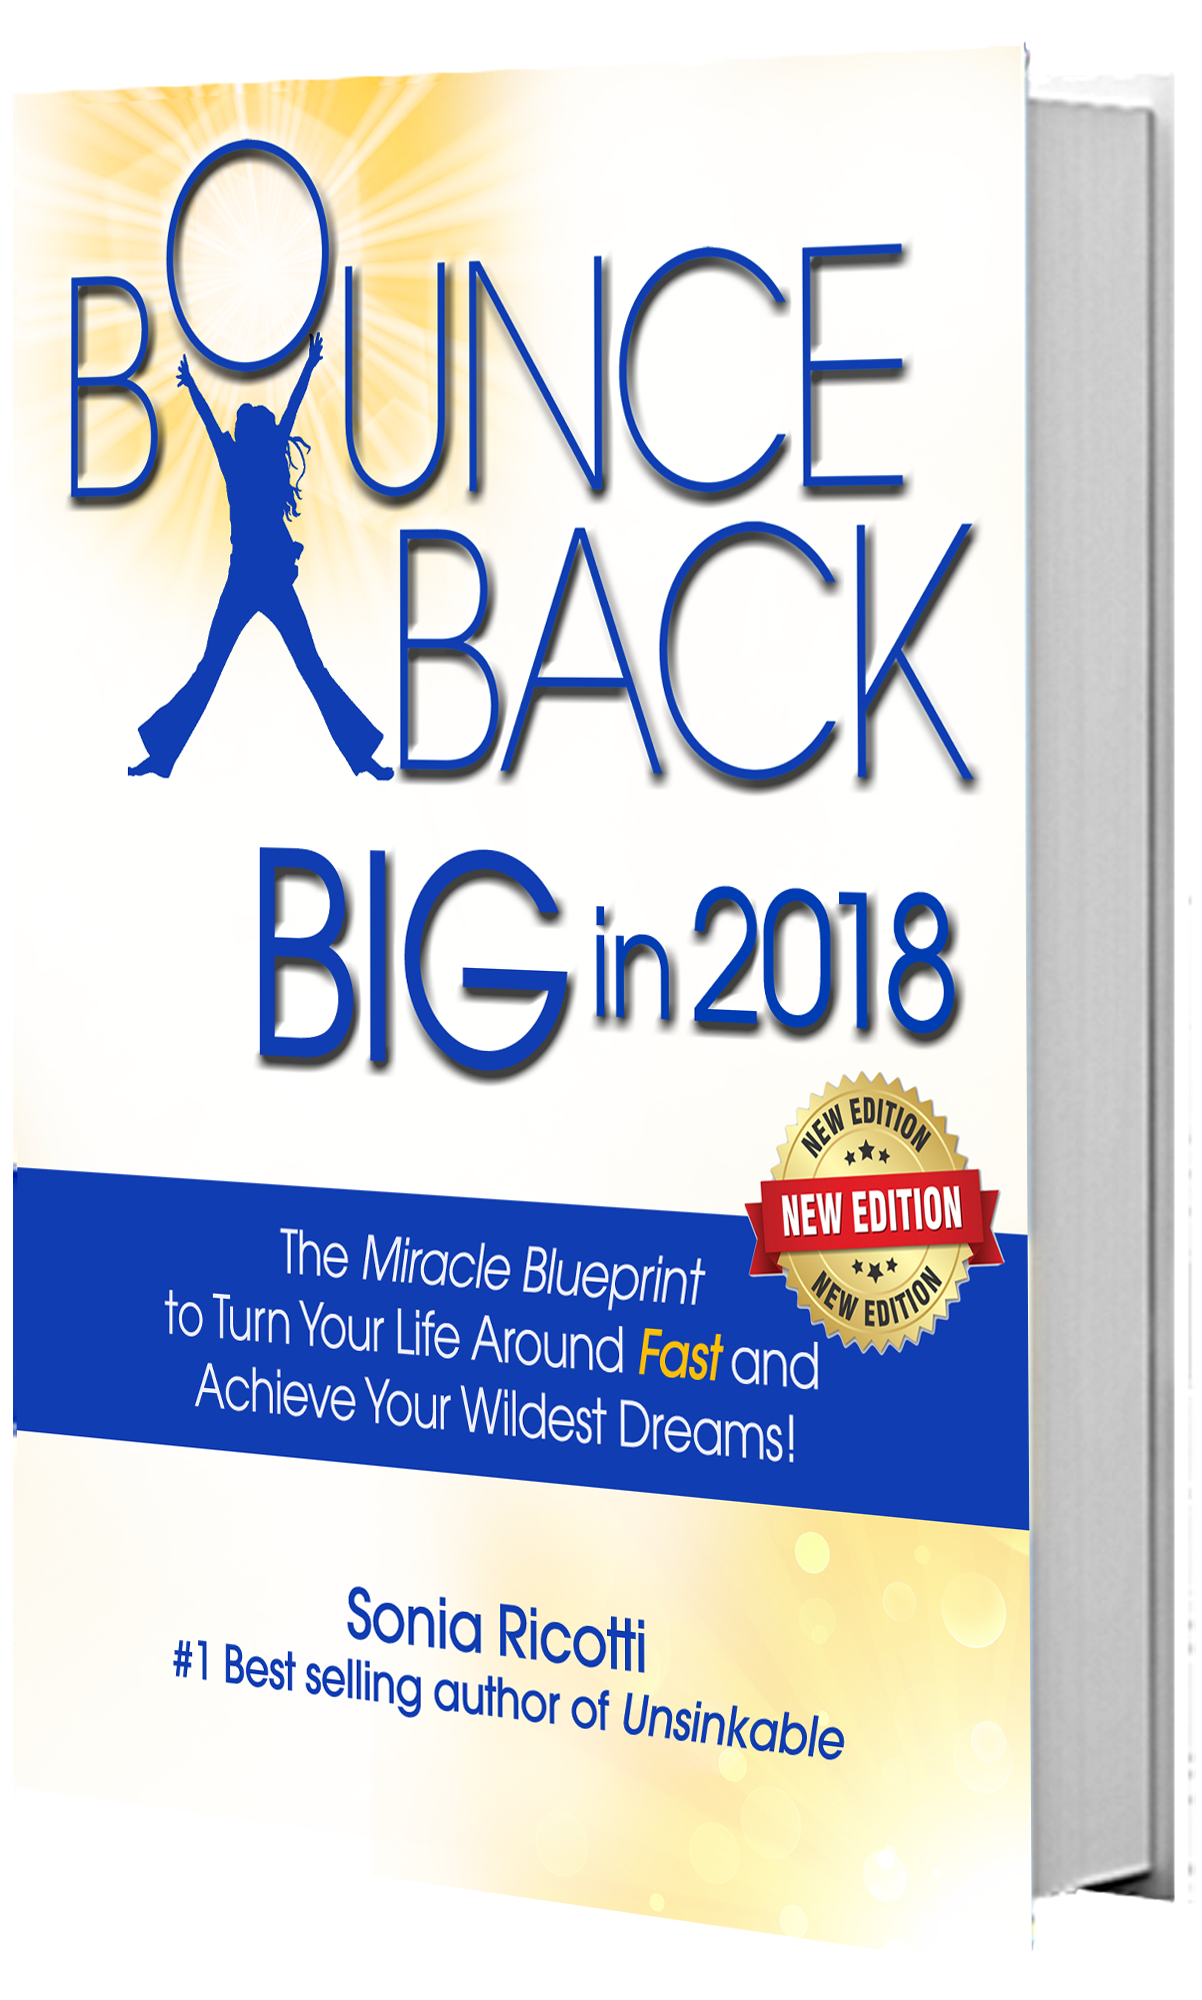 """""""Bounce Back BIG in 2018"""" with Sonia Ricotti: -FREE e-book 4 """"Bounce Back BIG in 2018"""" with Sonia Ricotti: -FREE e-book"""